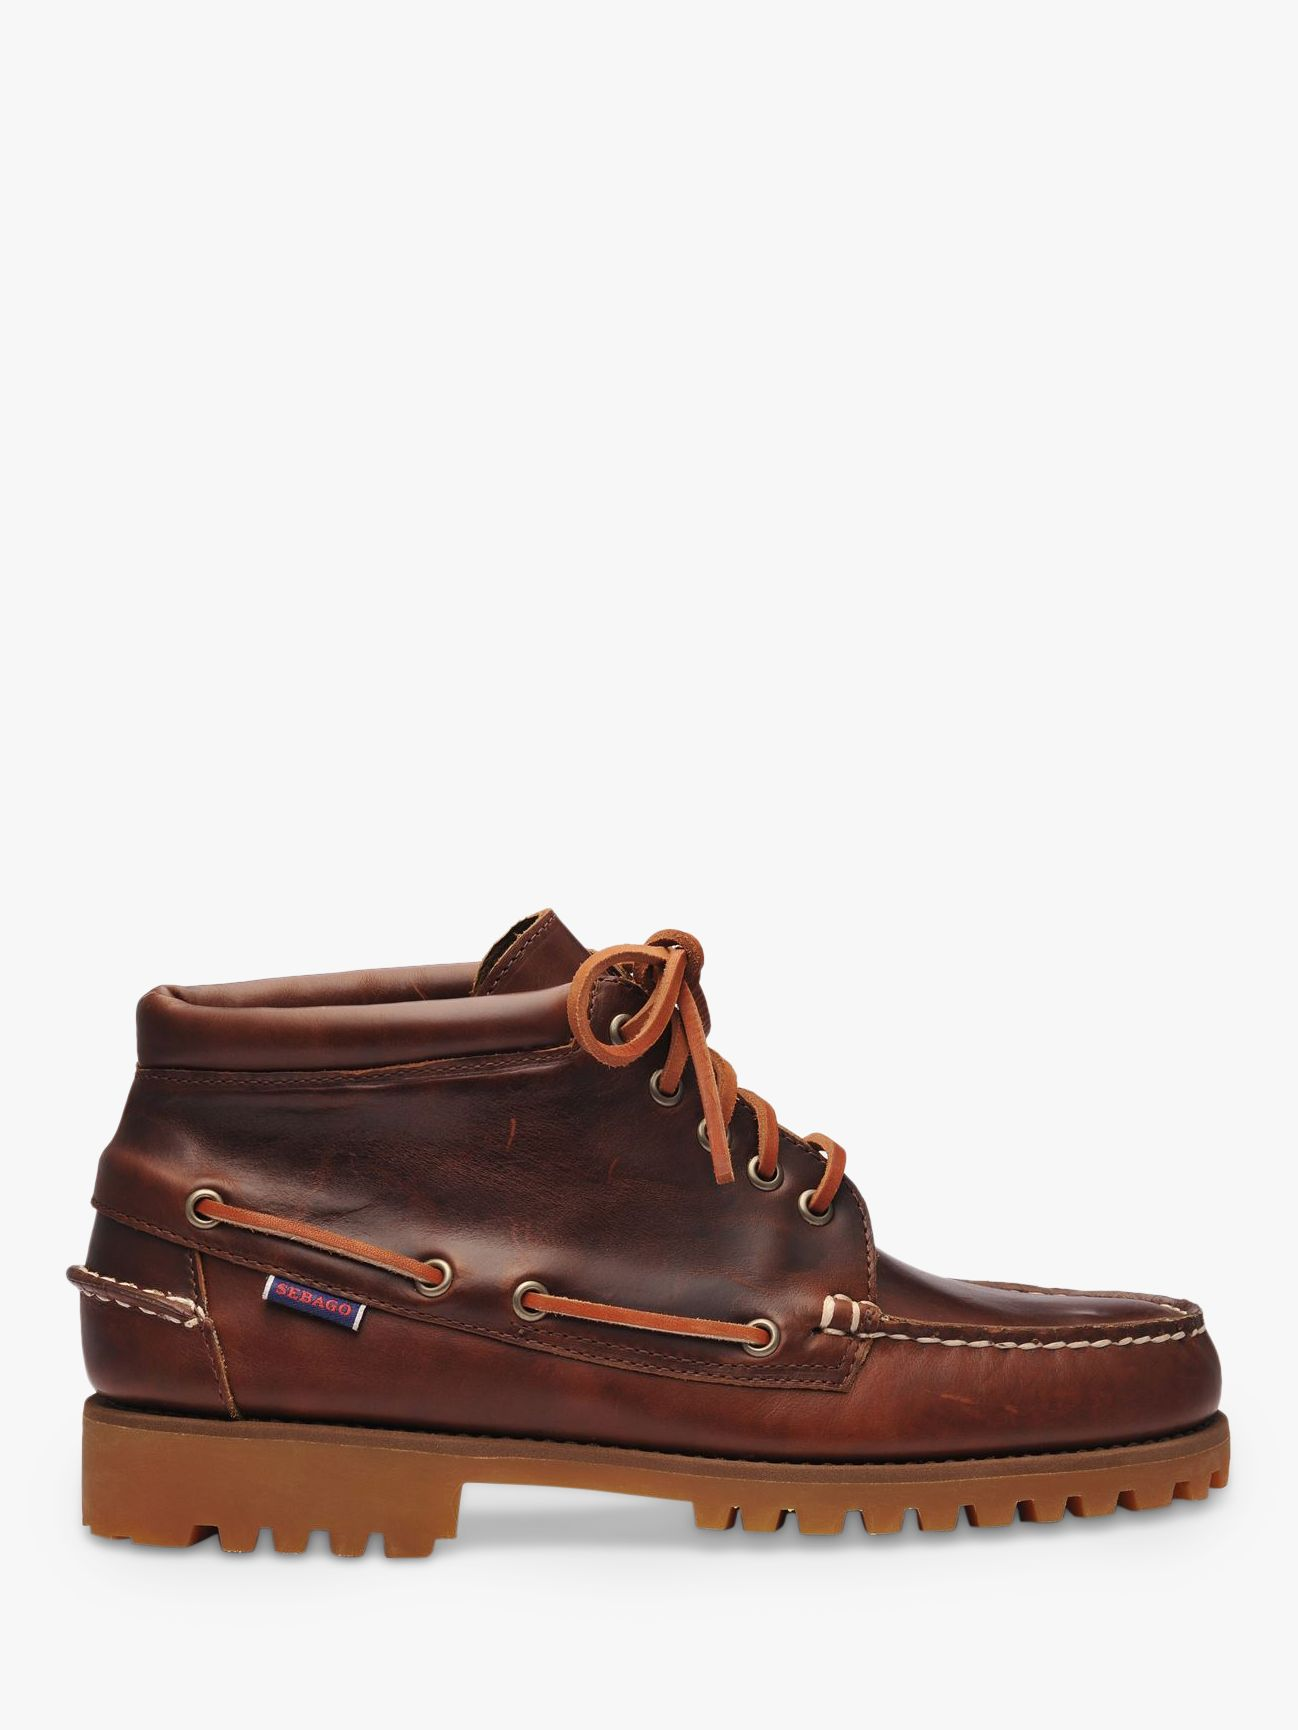 Sebago Sebago Campsides Ranger Mid Leather Moccasin Boots, Brown Gum